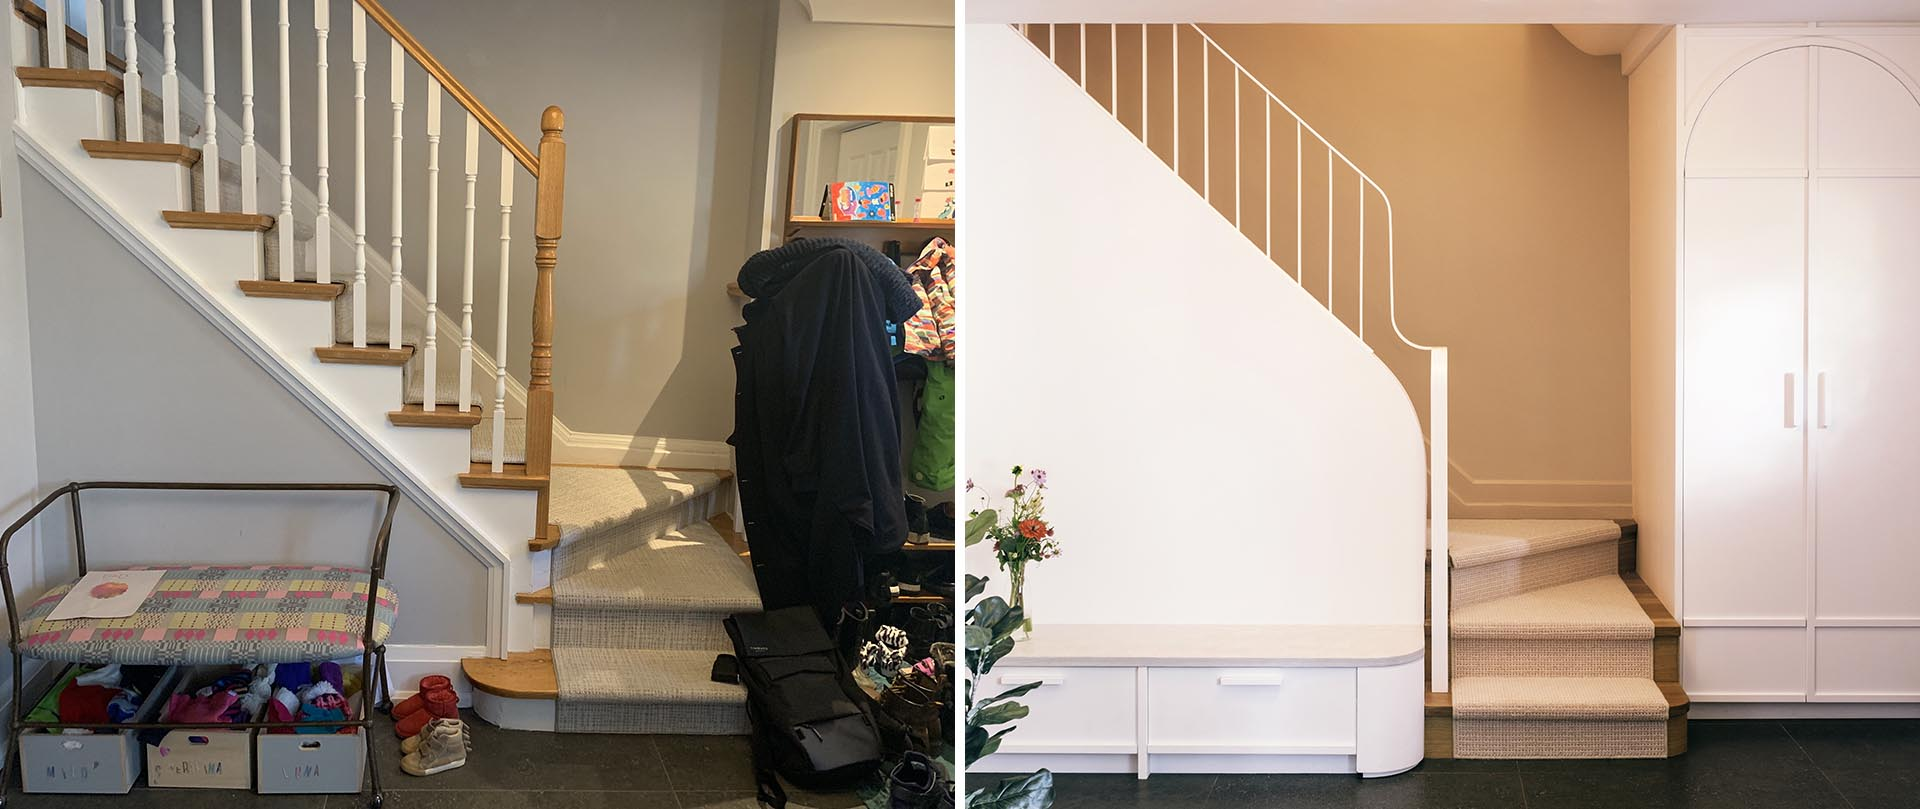 Before & After – A Renovation Gives This Family Home A More Organized Interior